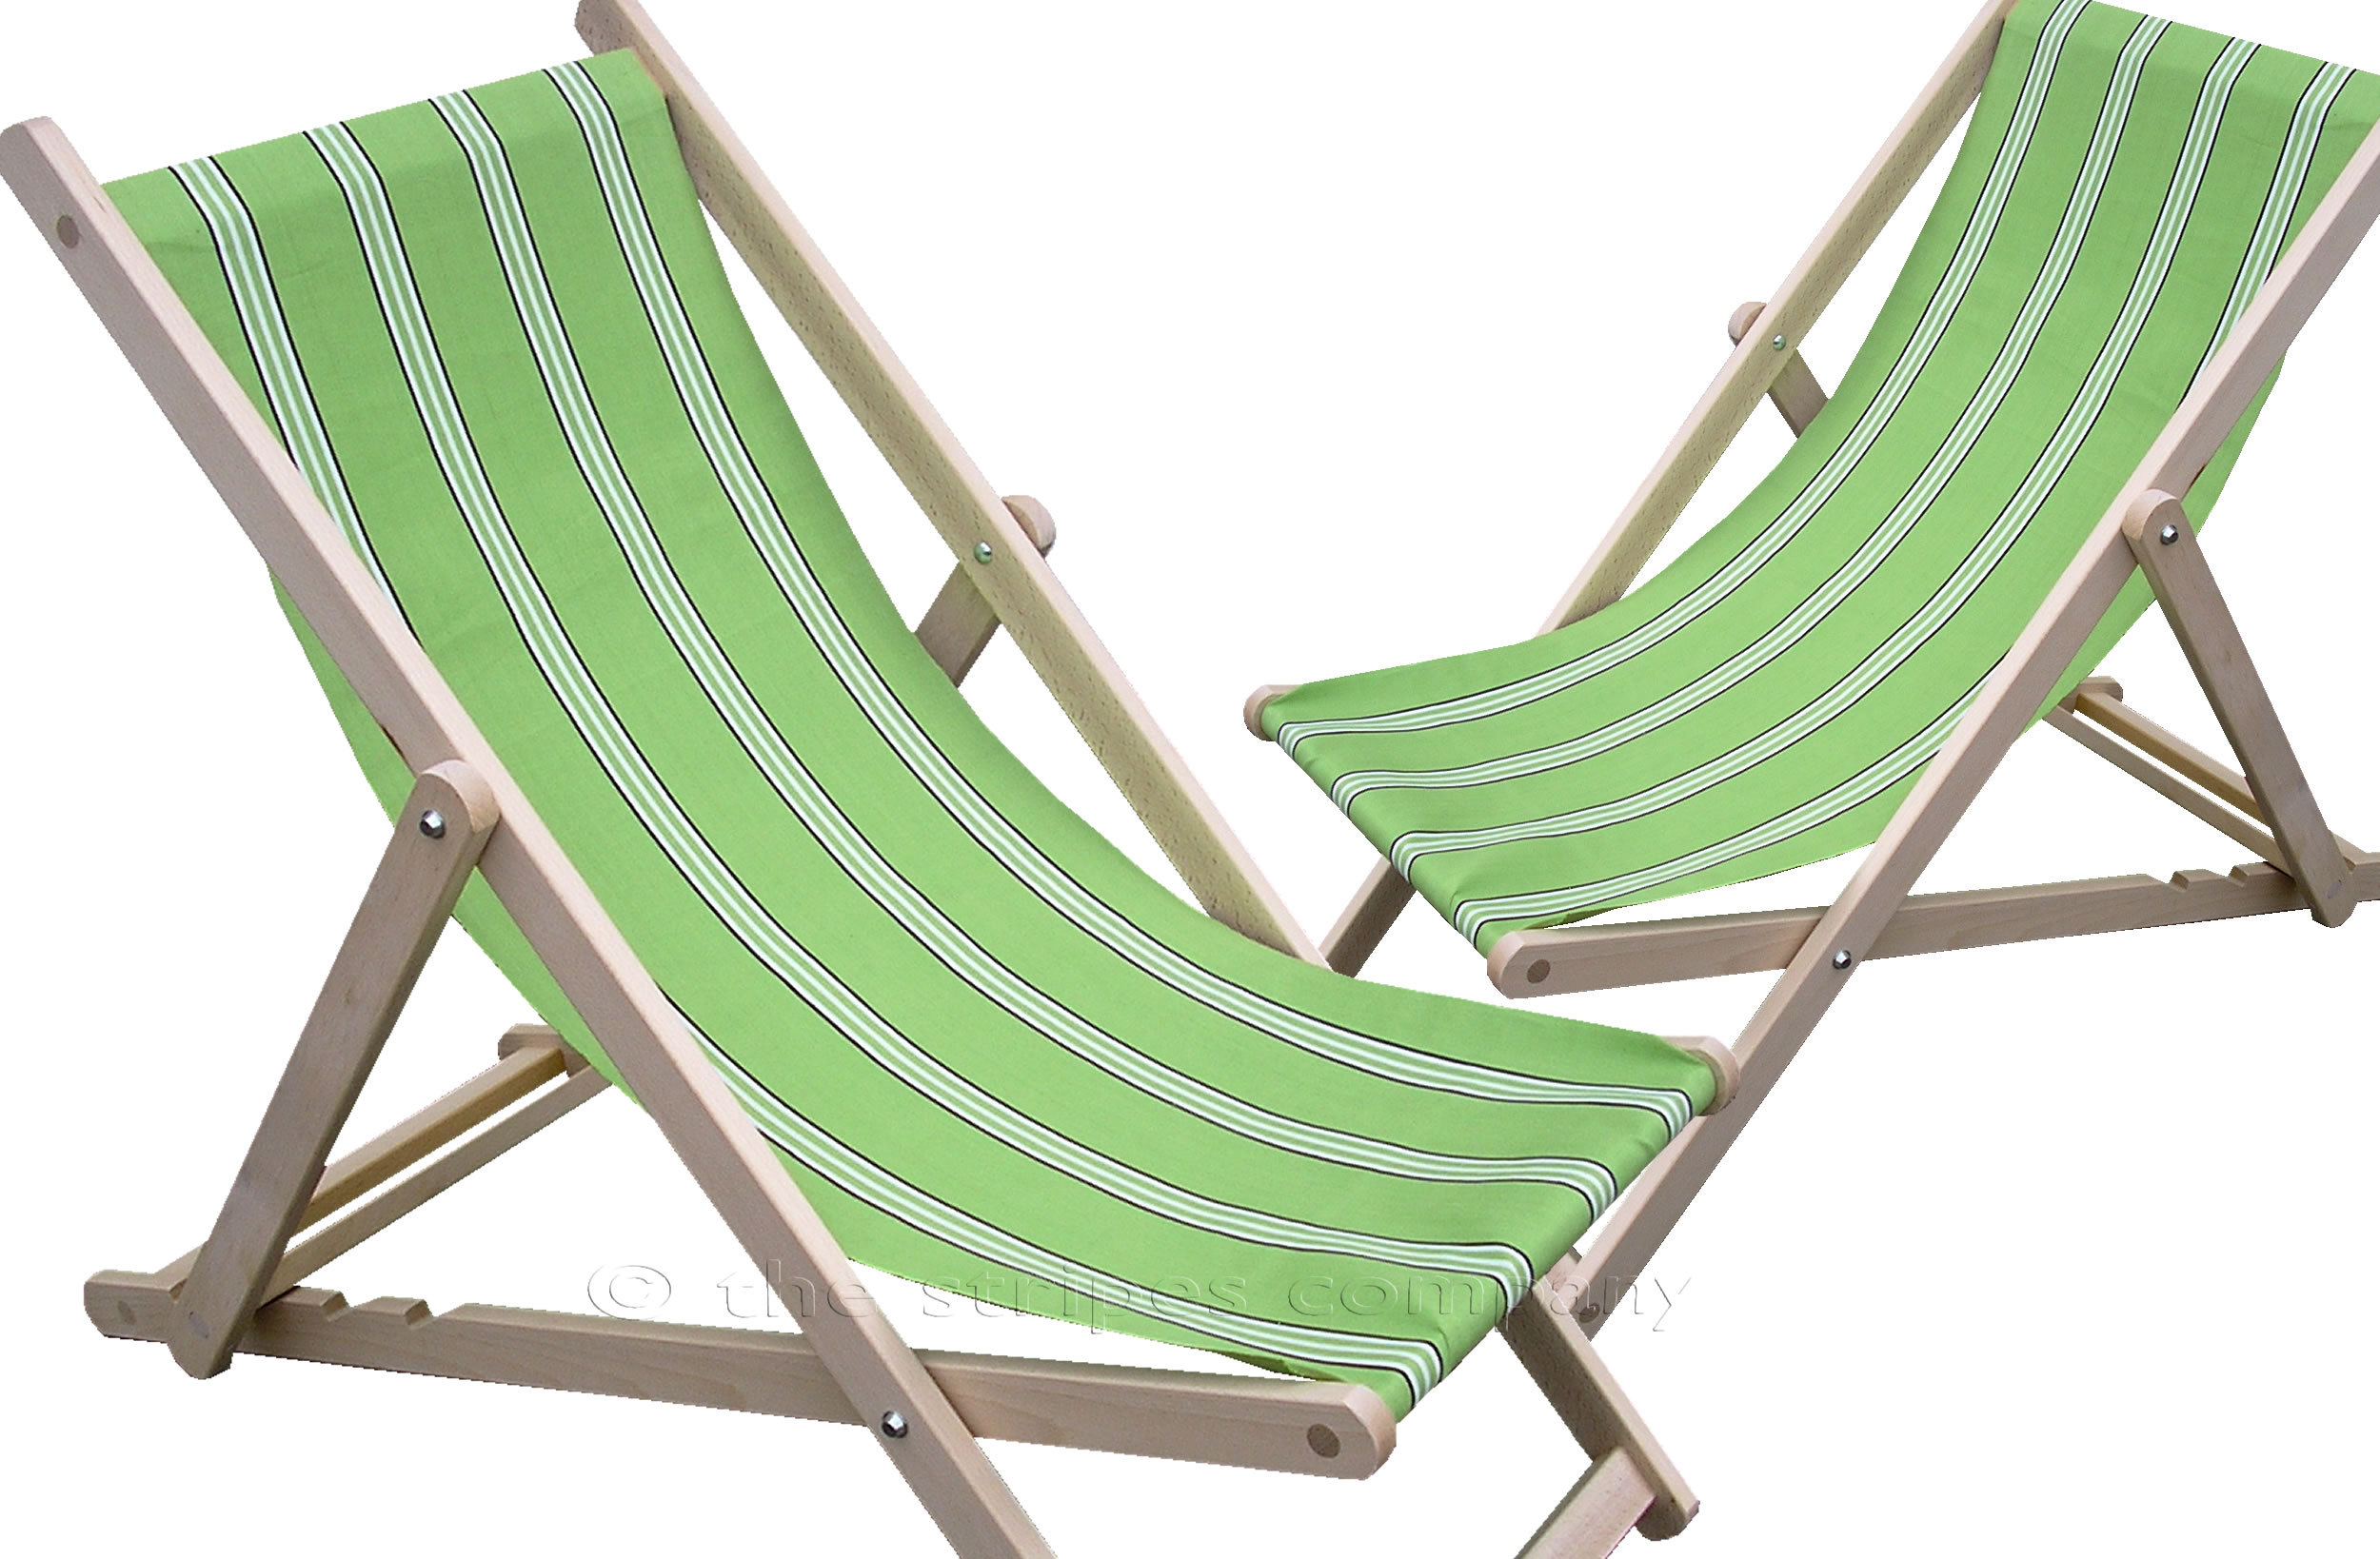 Lime green Deckchairs | Wooden Folding Deck Chairs Sprinting Stripes